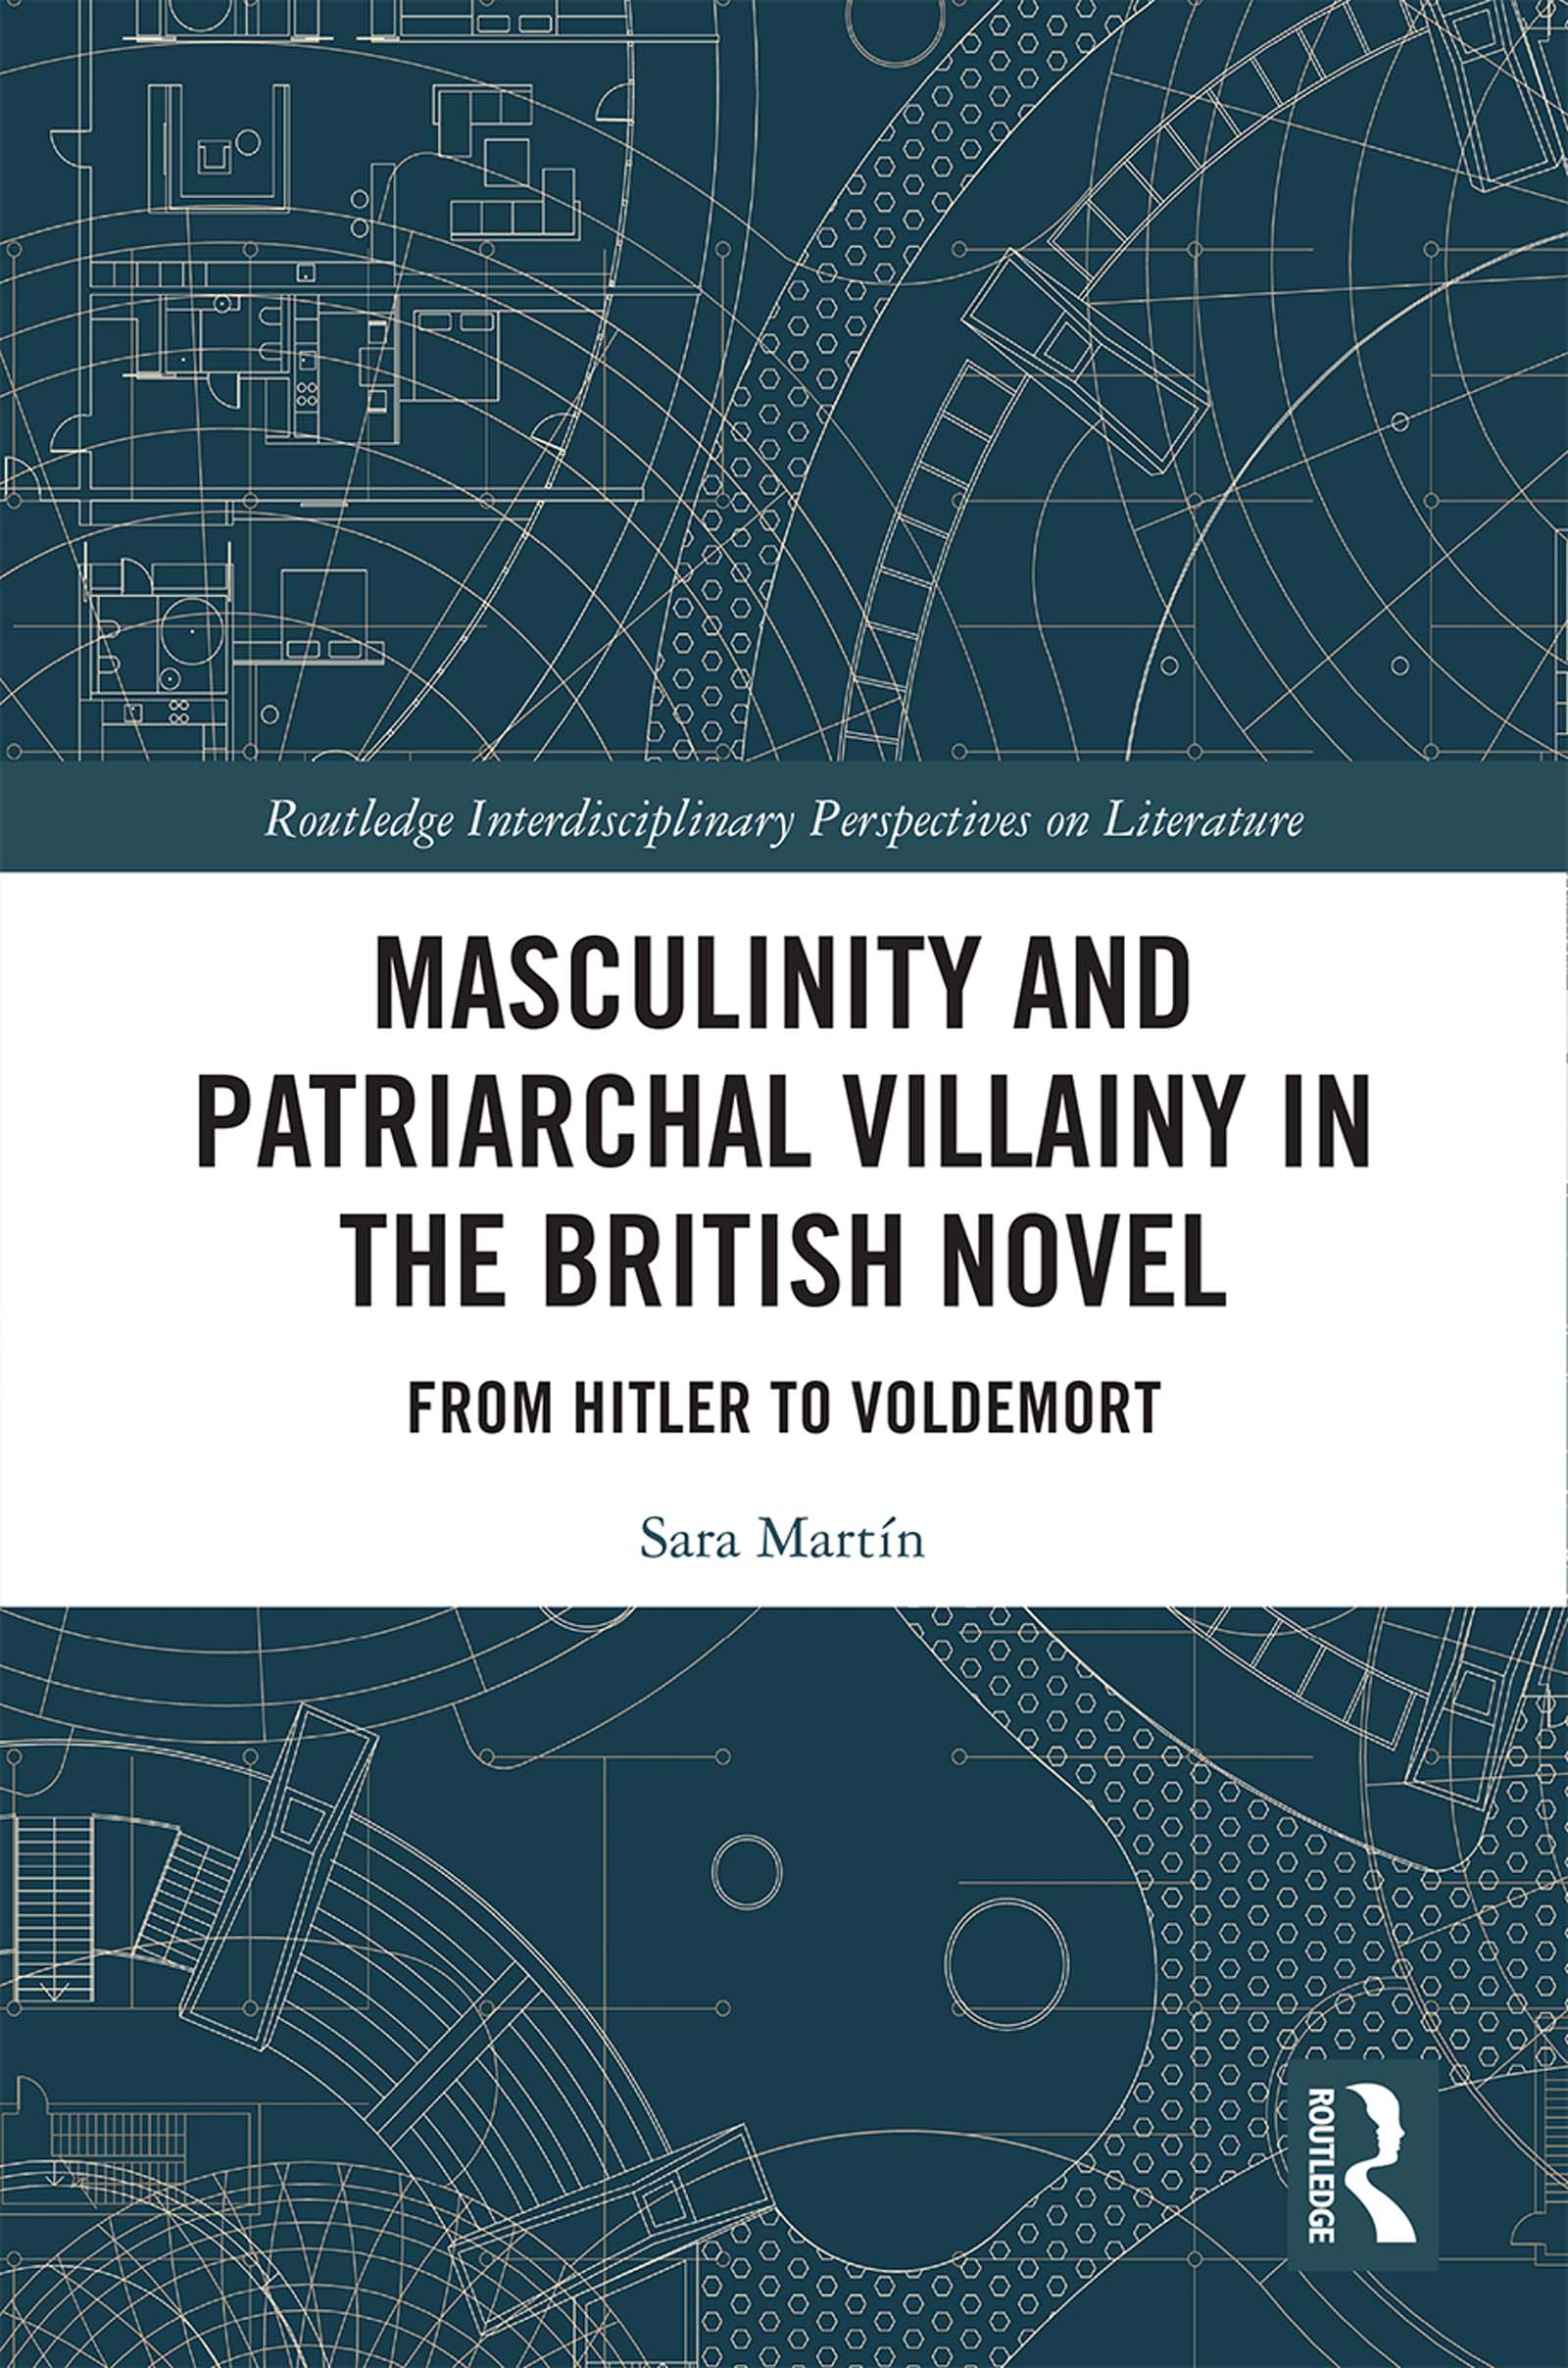 Masculinity and Patriarchal Villainy in the British Novel: From Hitler to Voldemort book cover